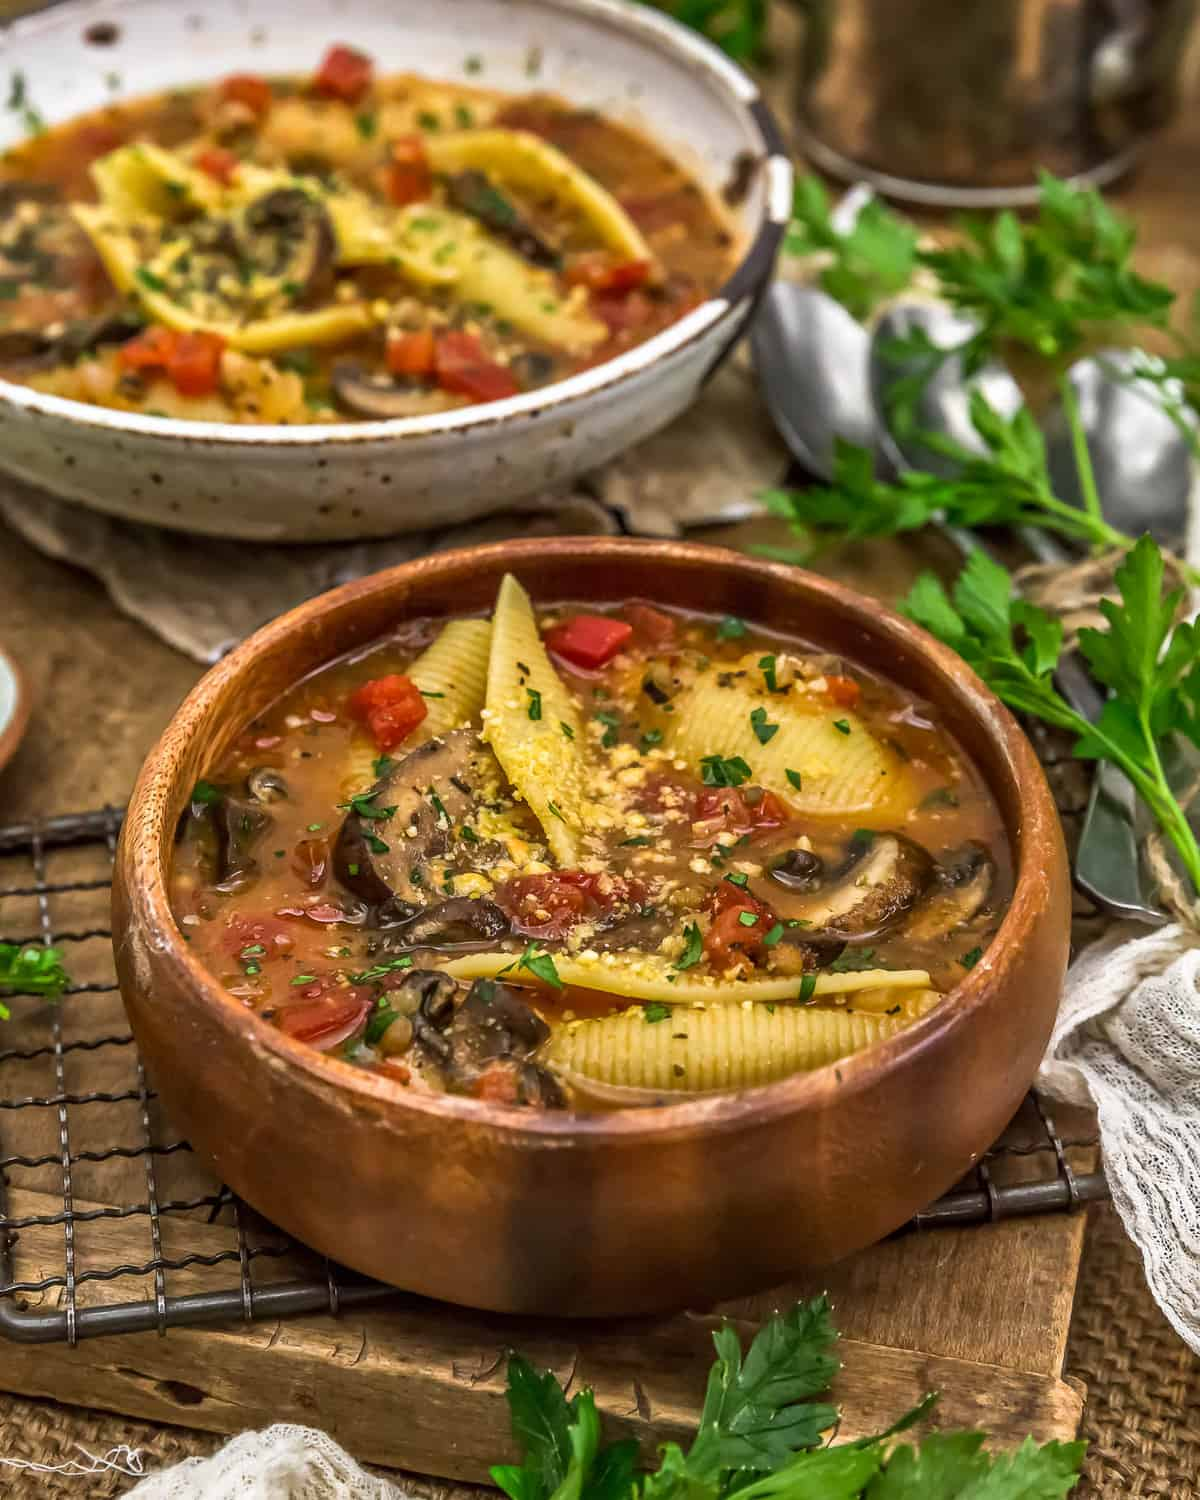 Bowl of Vegan Stuffed Shells Soup